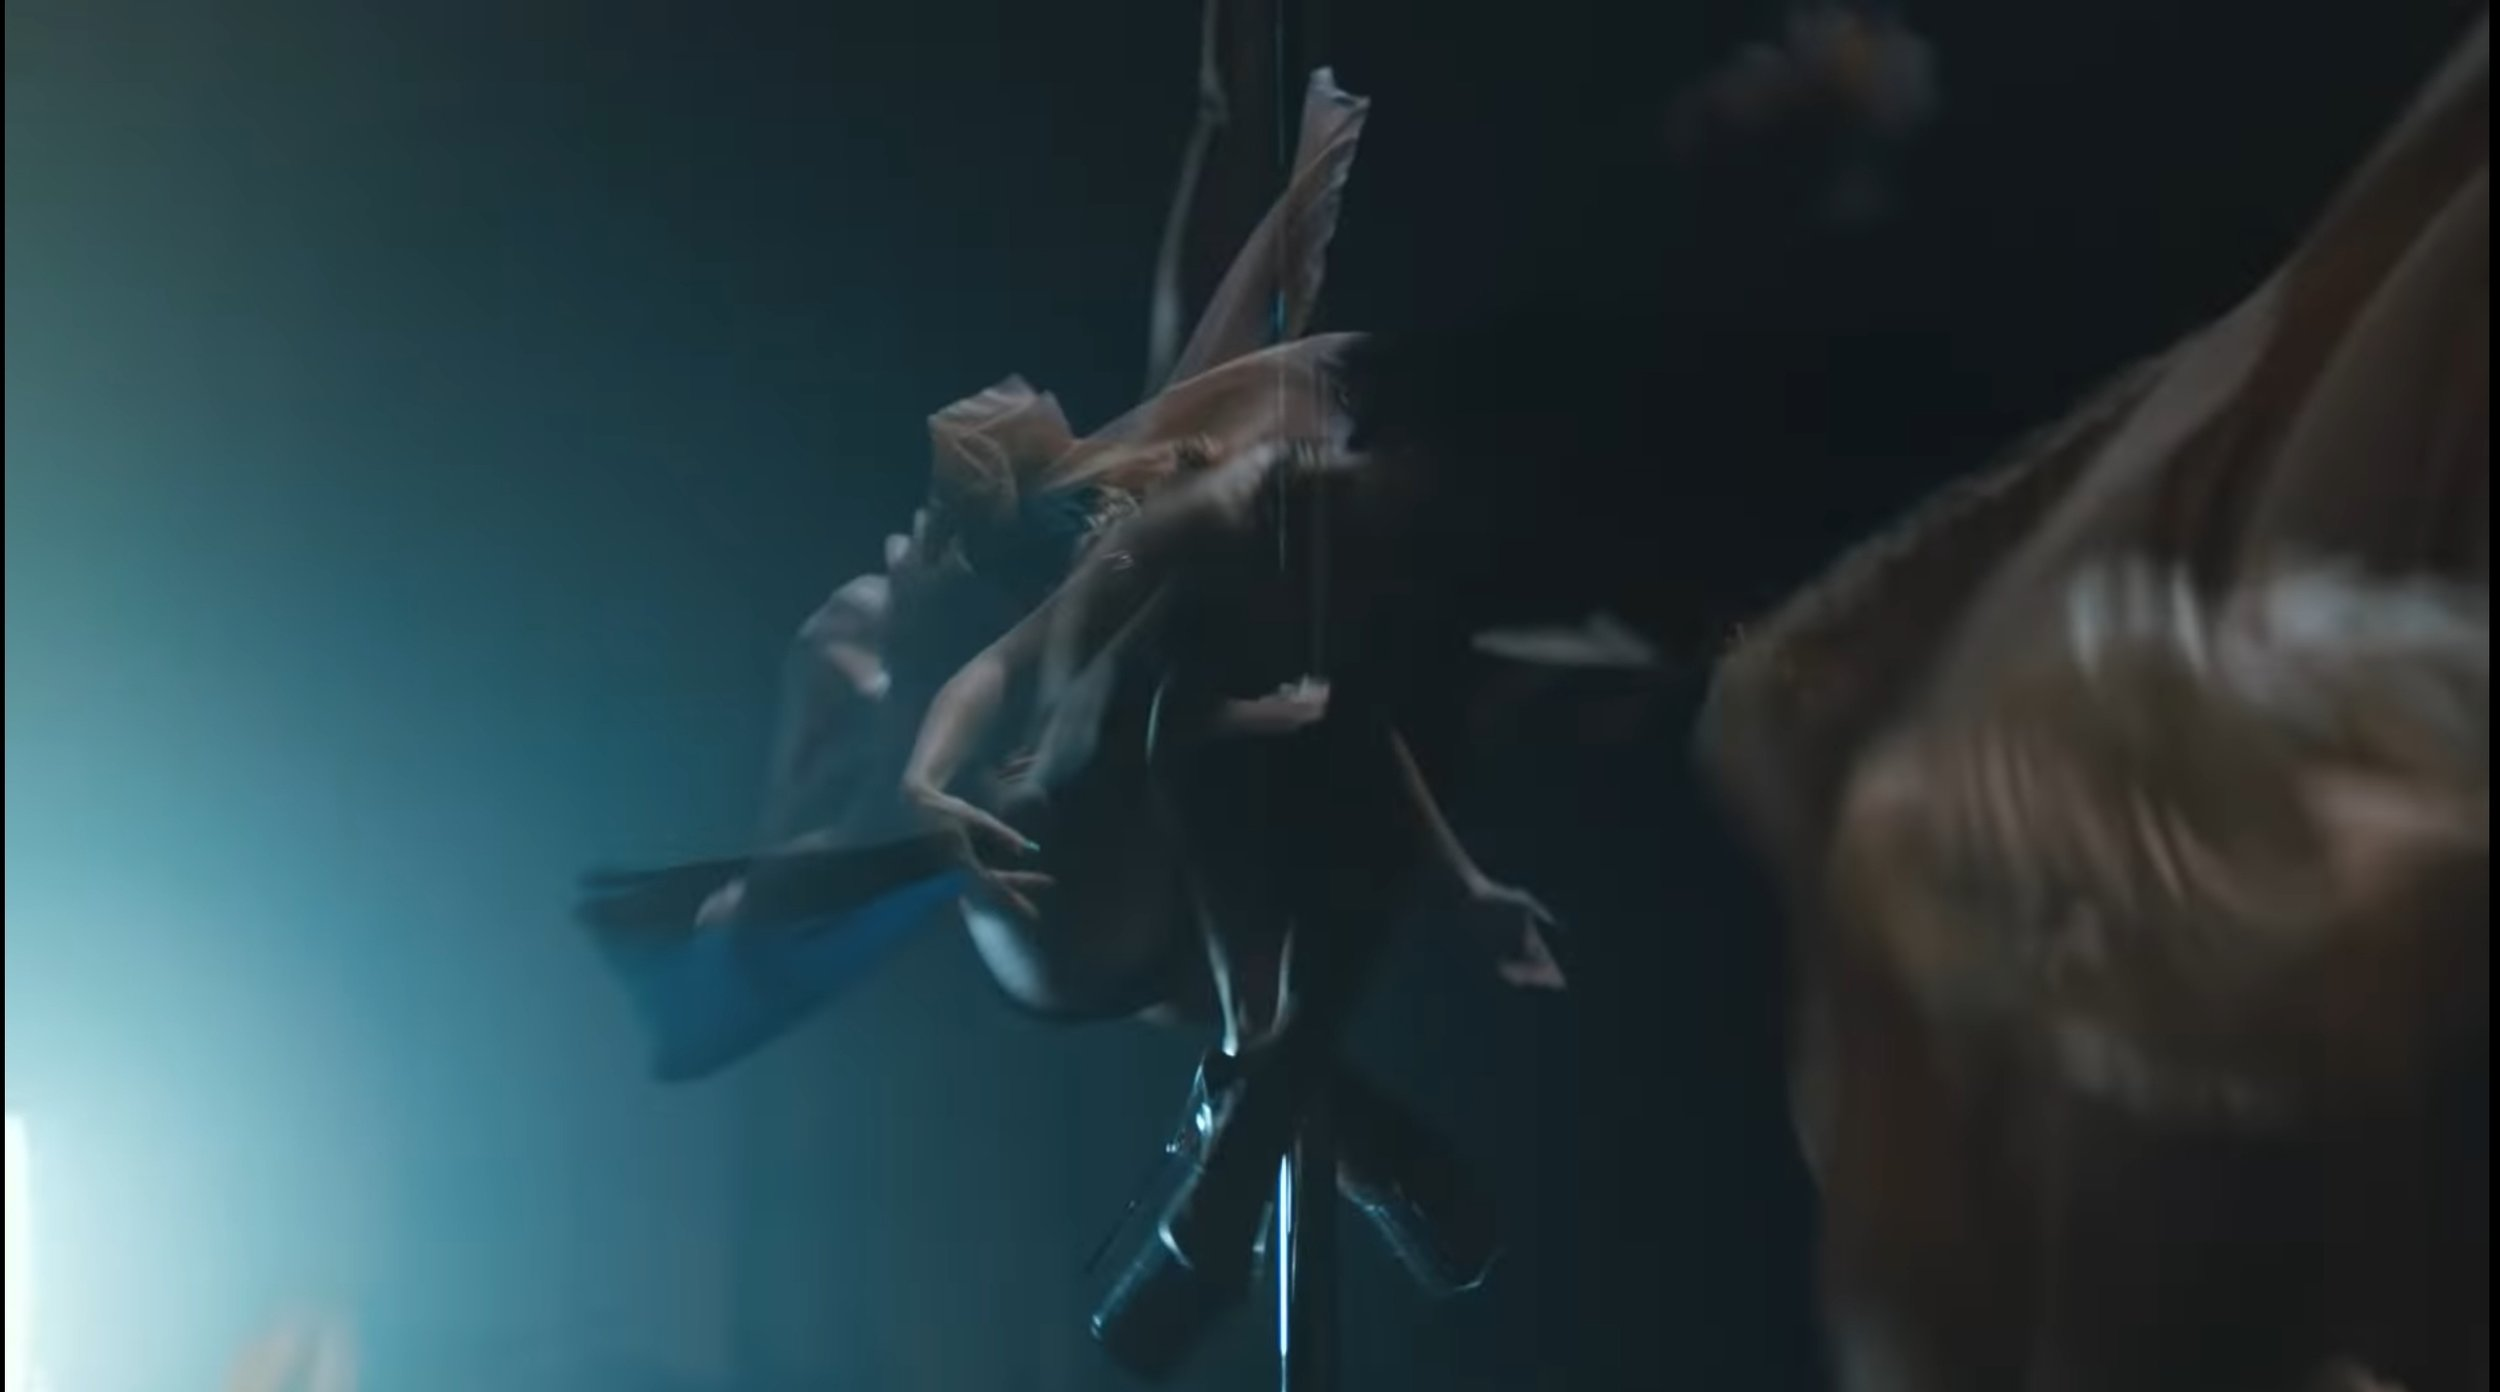 FKA Twigs in 'Cellophane' Music Video/ YouTube